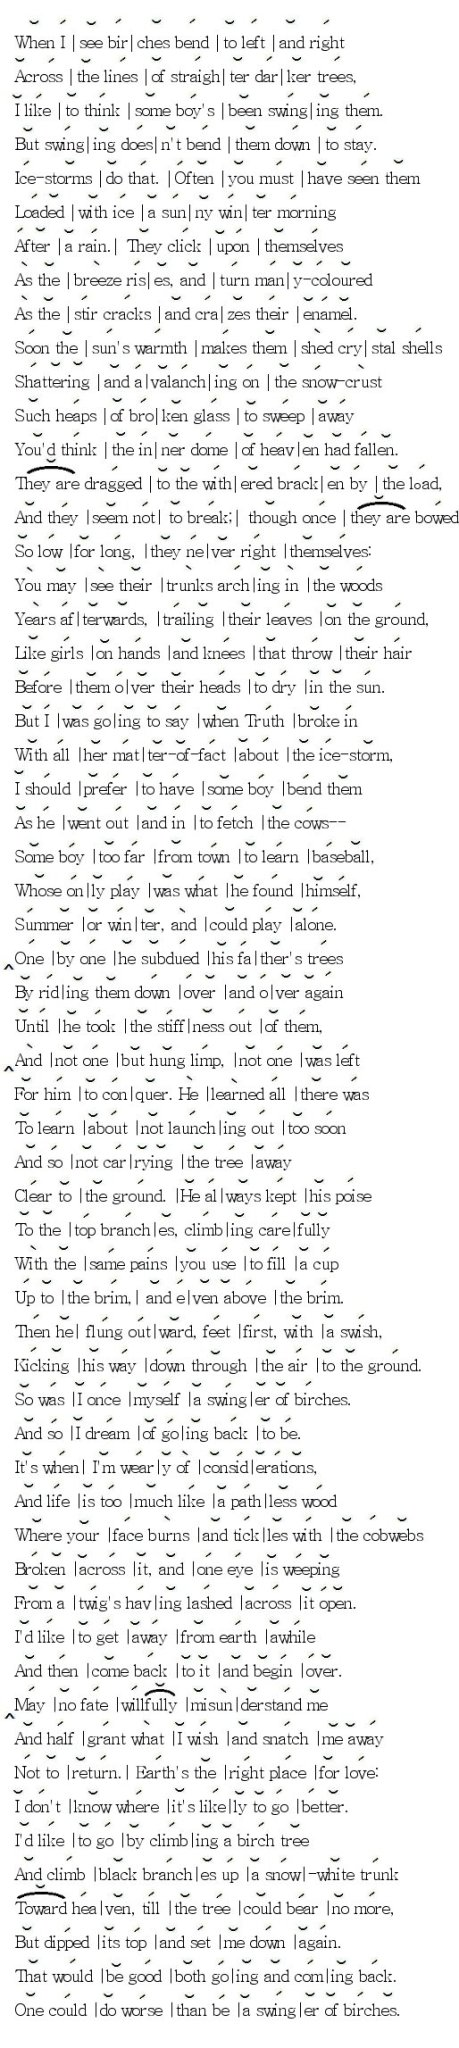 essays on the poem birches Analyzing robert frosts poem the birches english literature essay print robert frosts' poem birches is a reflective poem about an uk essays is a trading.